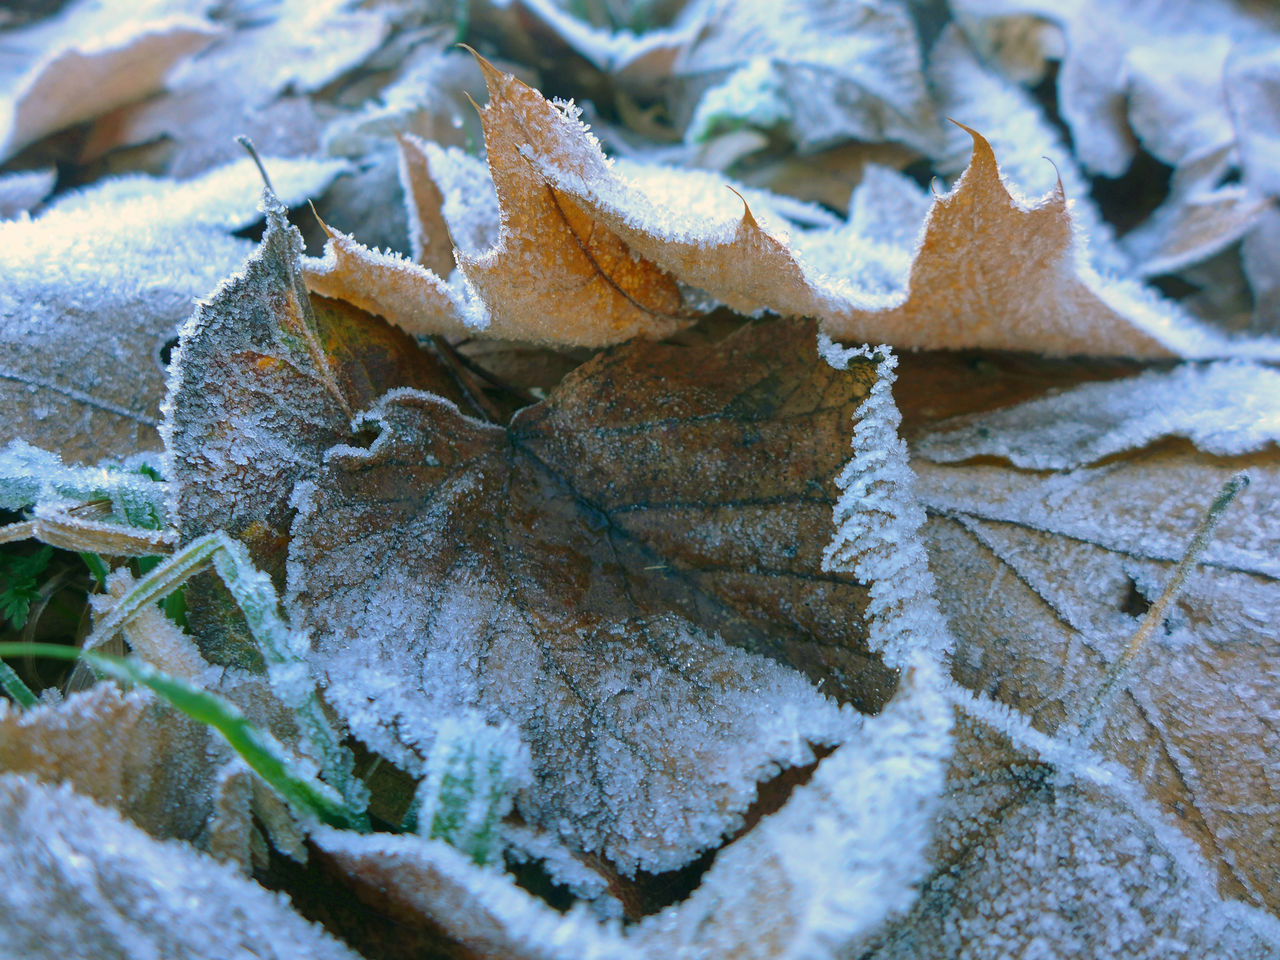 Backgrounds Beauty In Nature Close-up Cold Temperature Fragility Frozen Hoarfrost Ice Leaf Leaf Vein Leaves Nature Outdoors White Frost Winter Winter Leaves